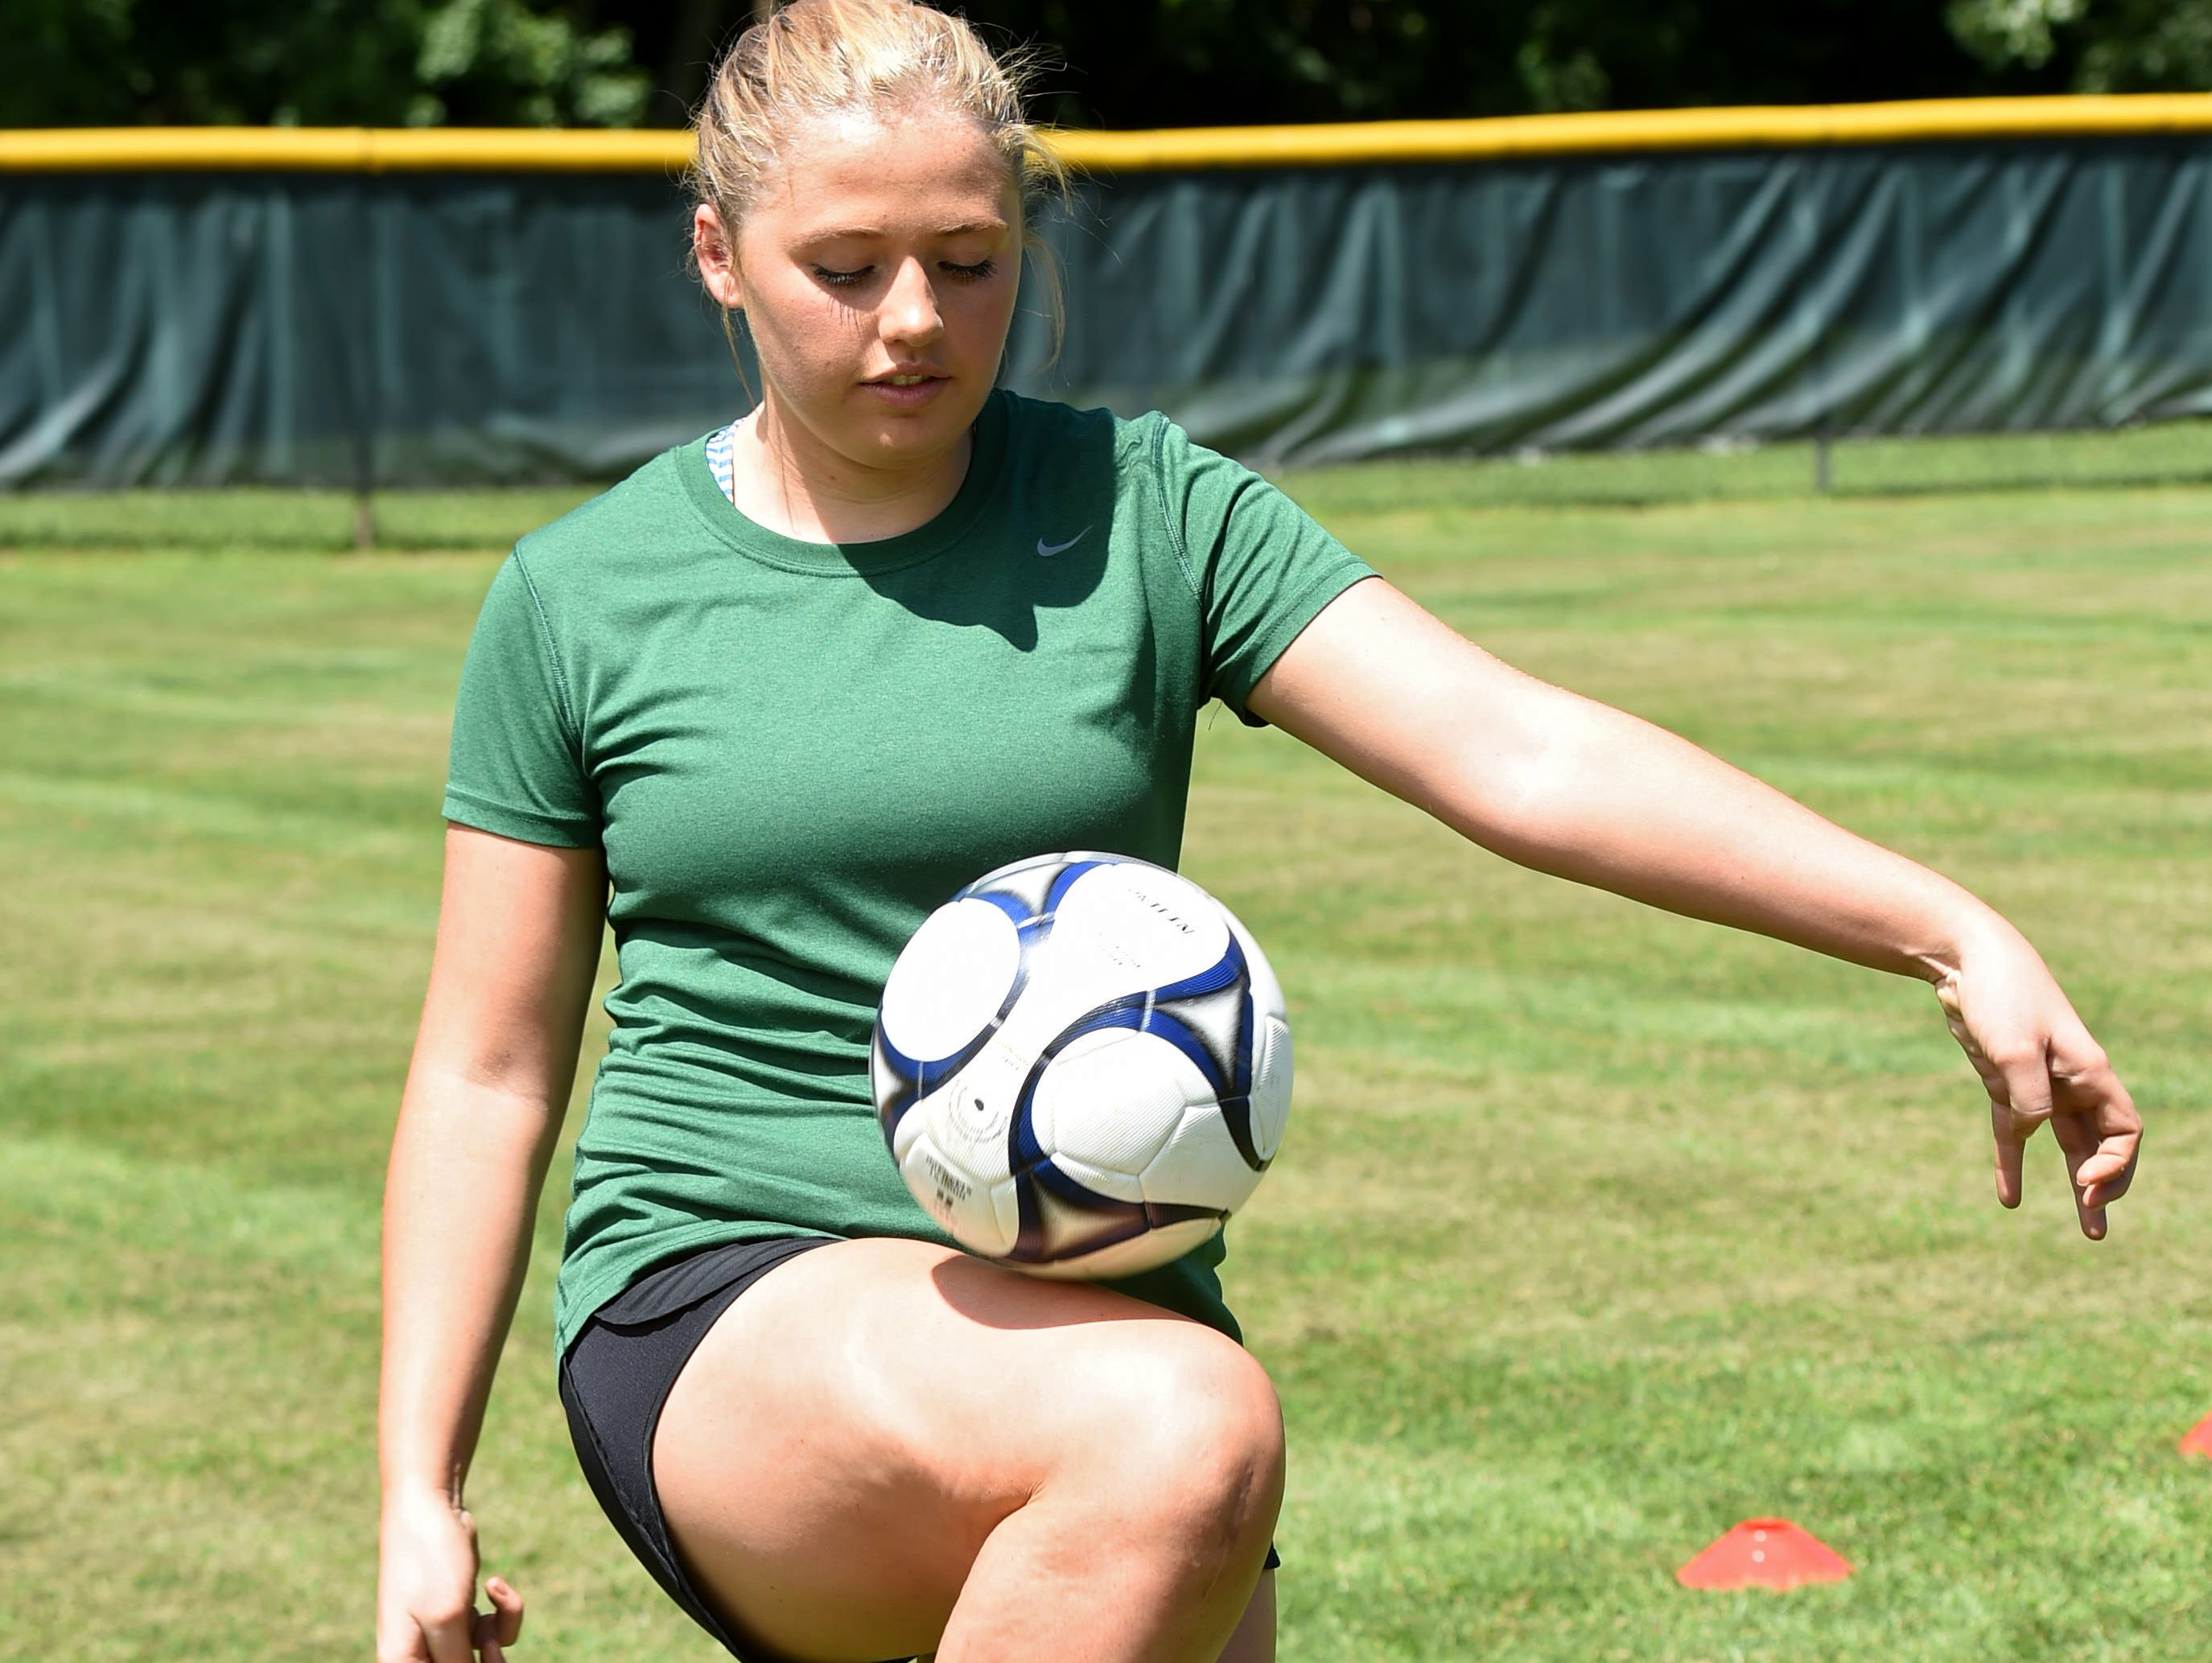 Eileen Fiore juggles a soccer ball while demonstrating her workout routine at Spackenkill High School in August. Fiore tore her ACL during a playoff game against Dover High School on October 29, 2015.